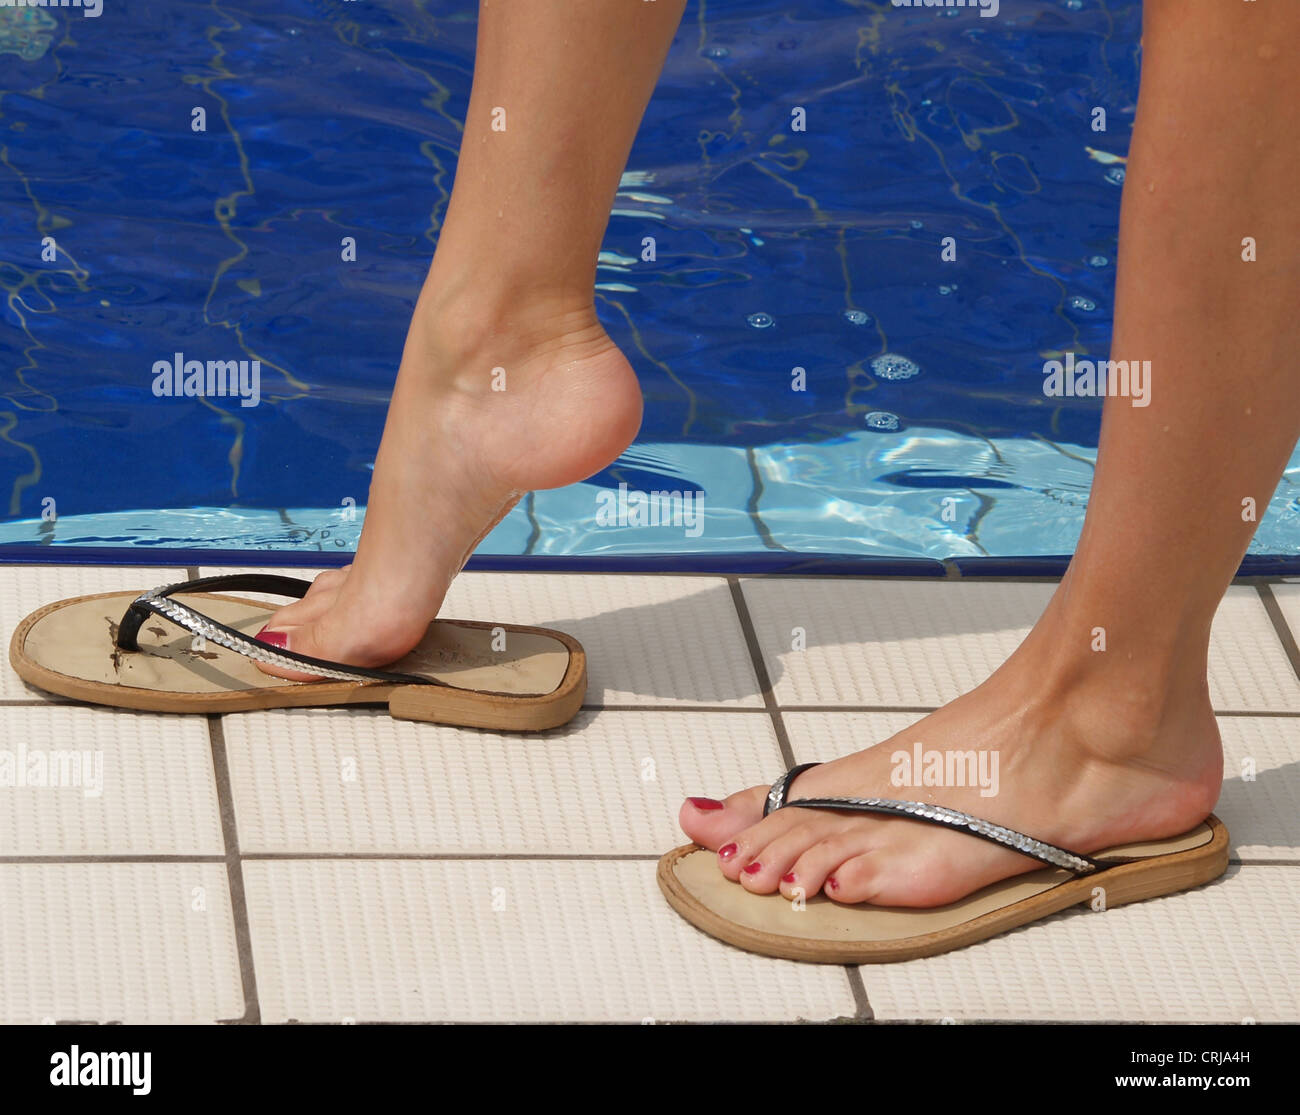 b572aae7d young woman s feet with varnished toenails in flip-flops at the edge of a  swimming